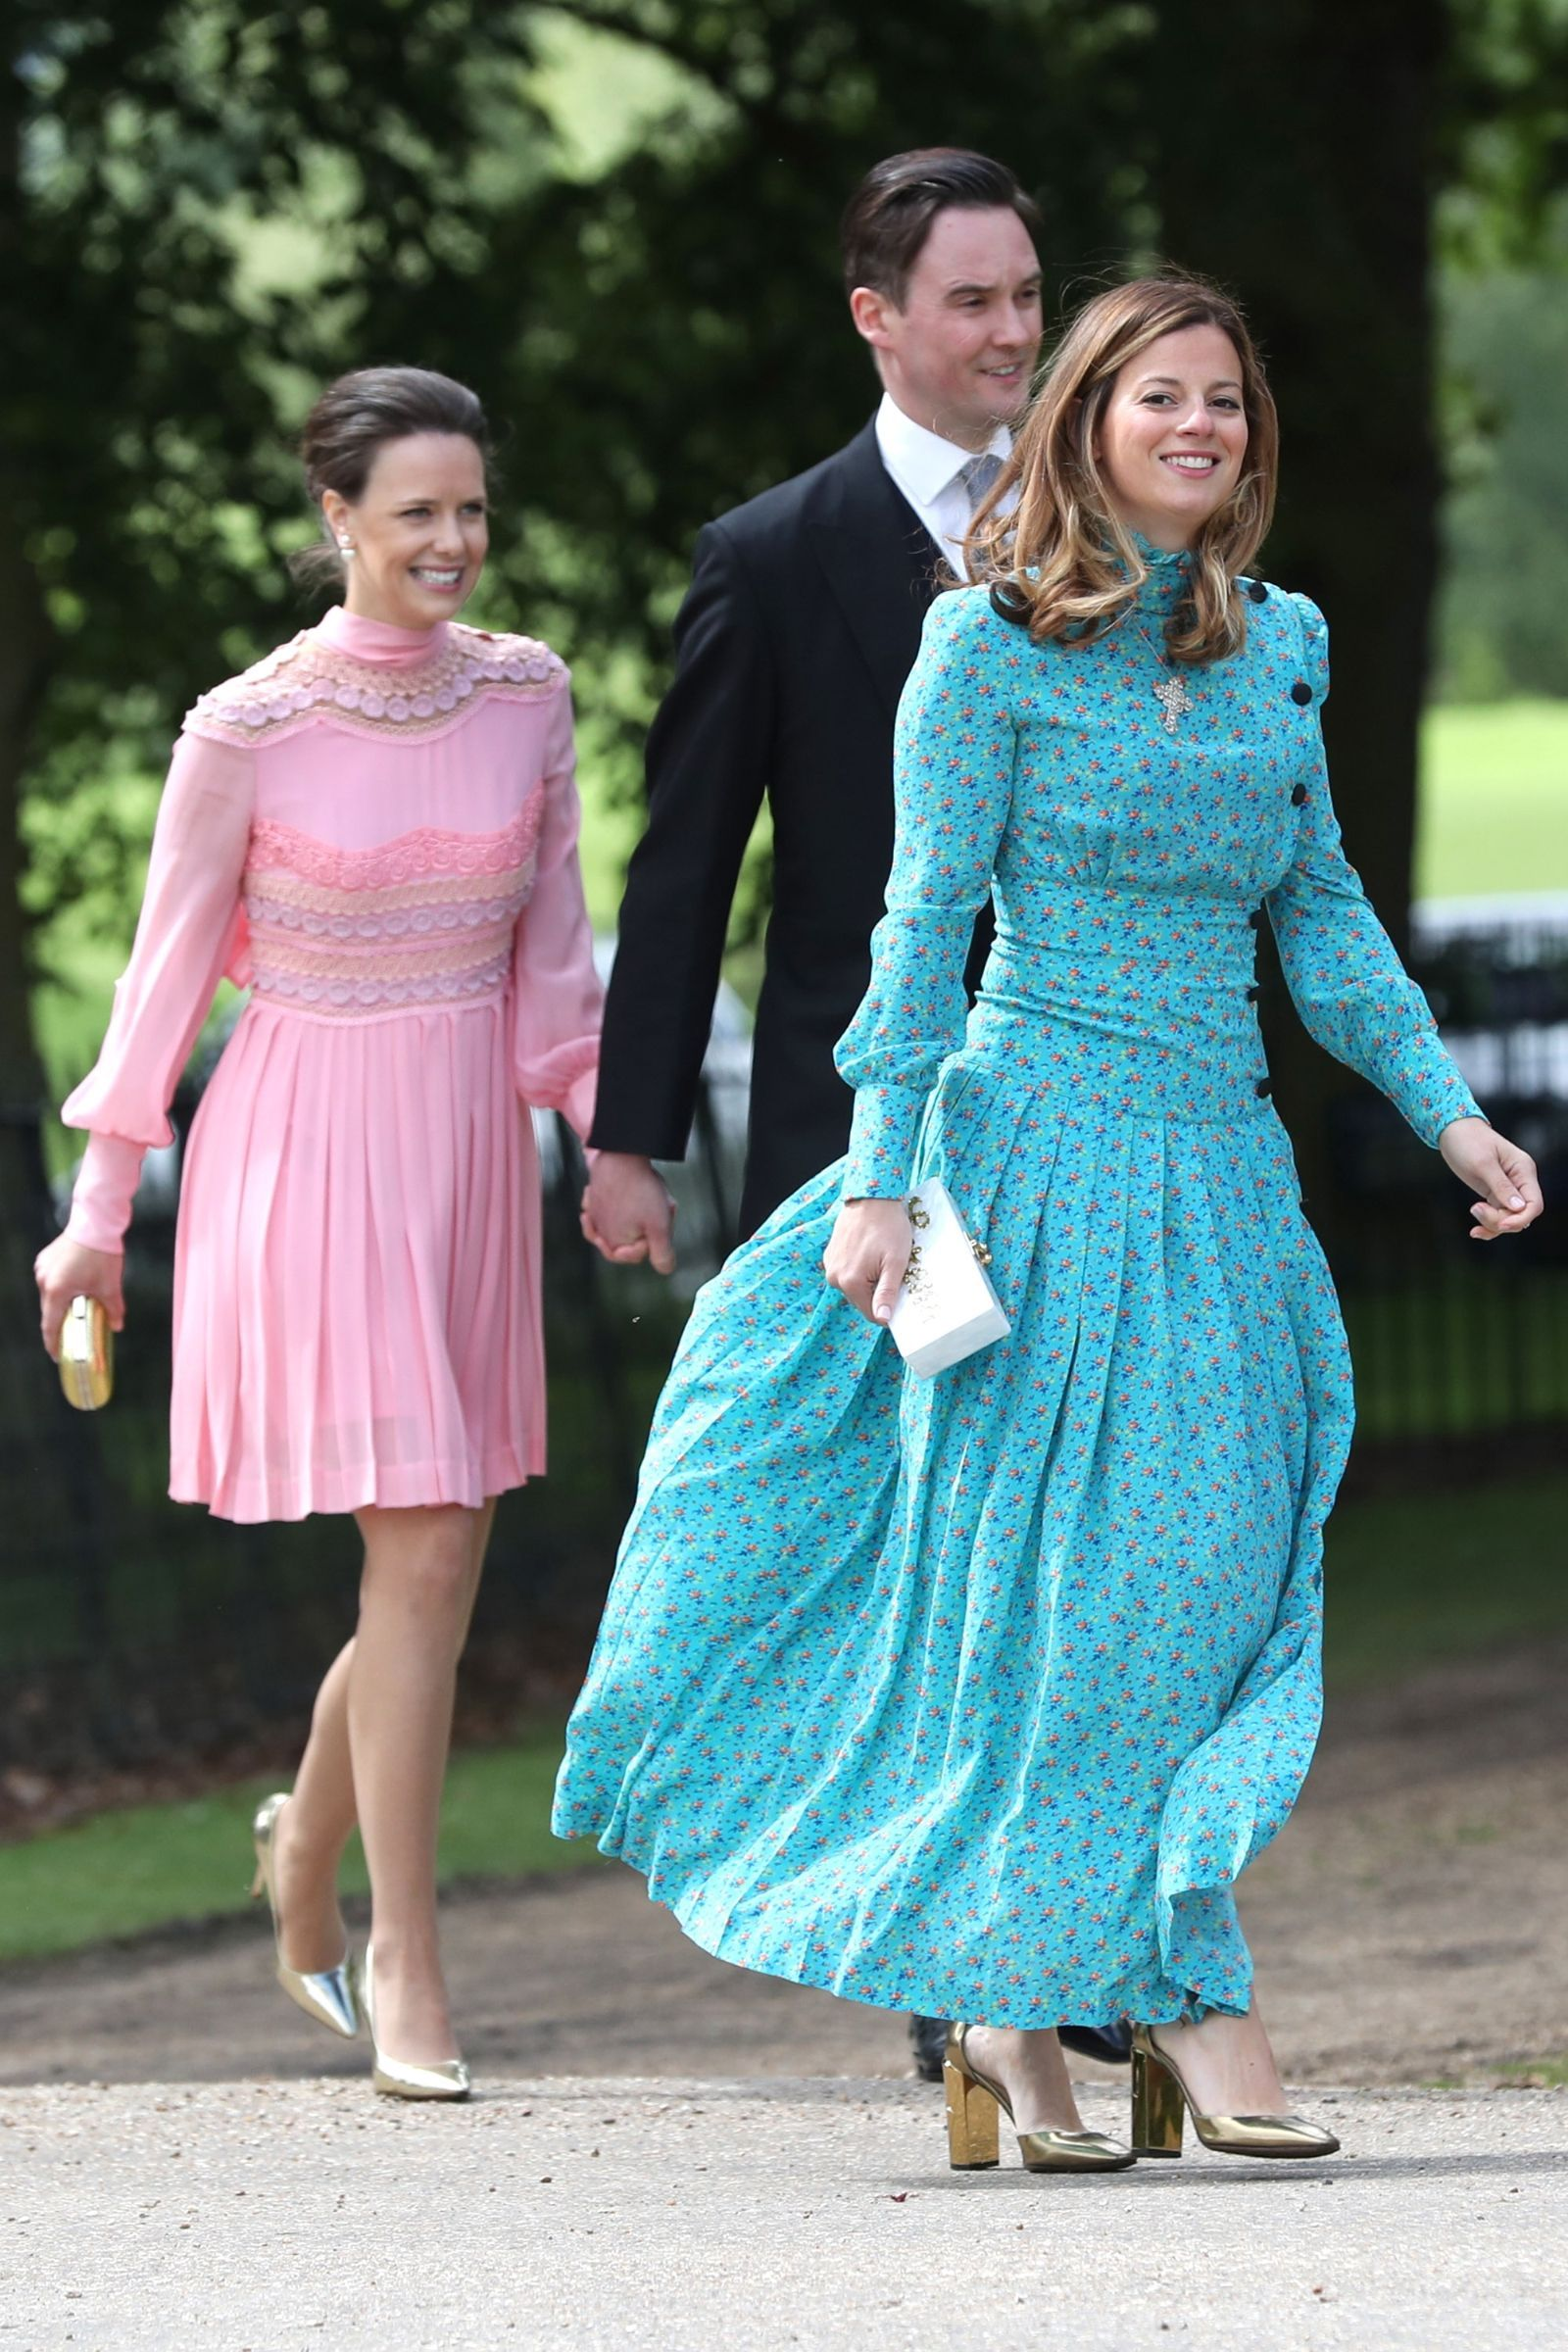 The Best Dressed Guests at Pippa Middleton\'s Wedding | Wedding ...